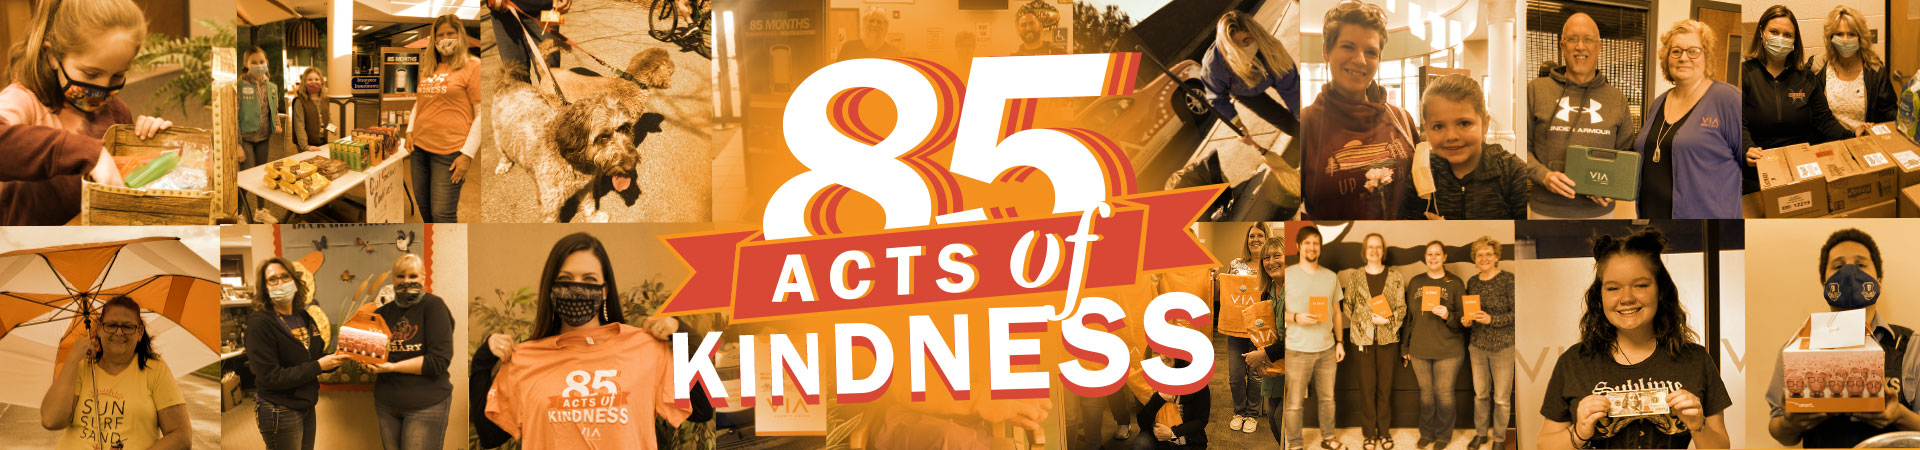 85 Acts of Kindness